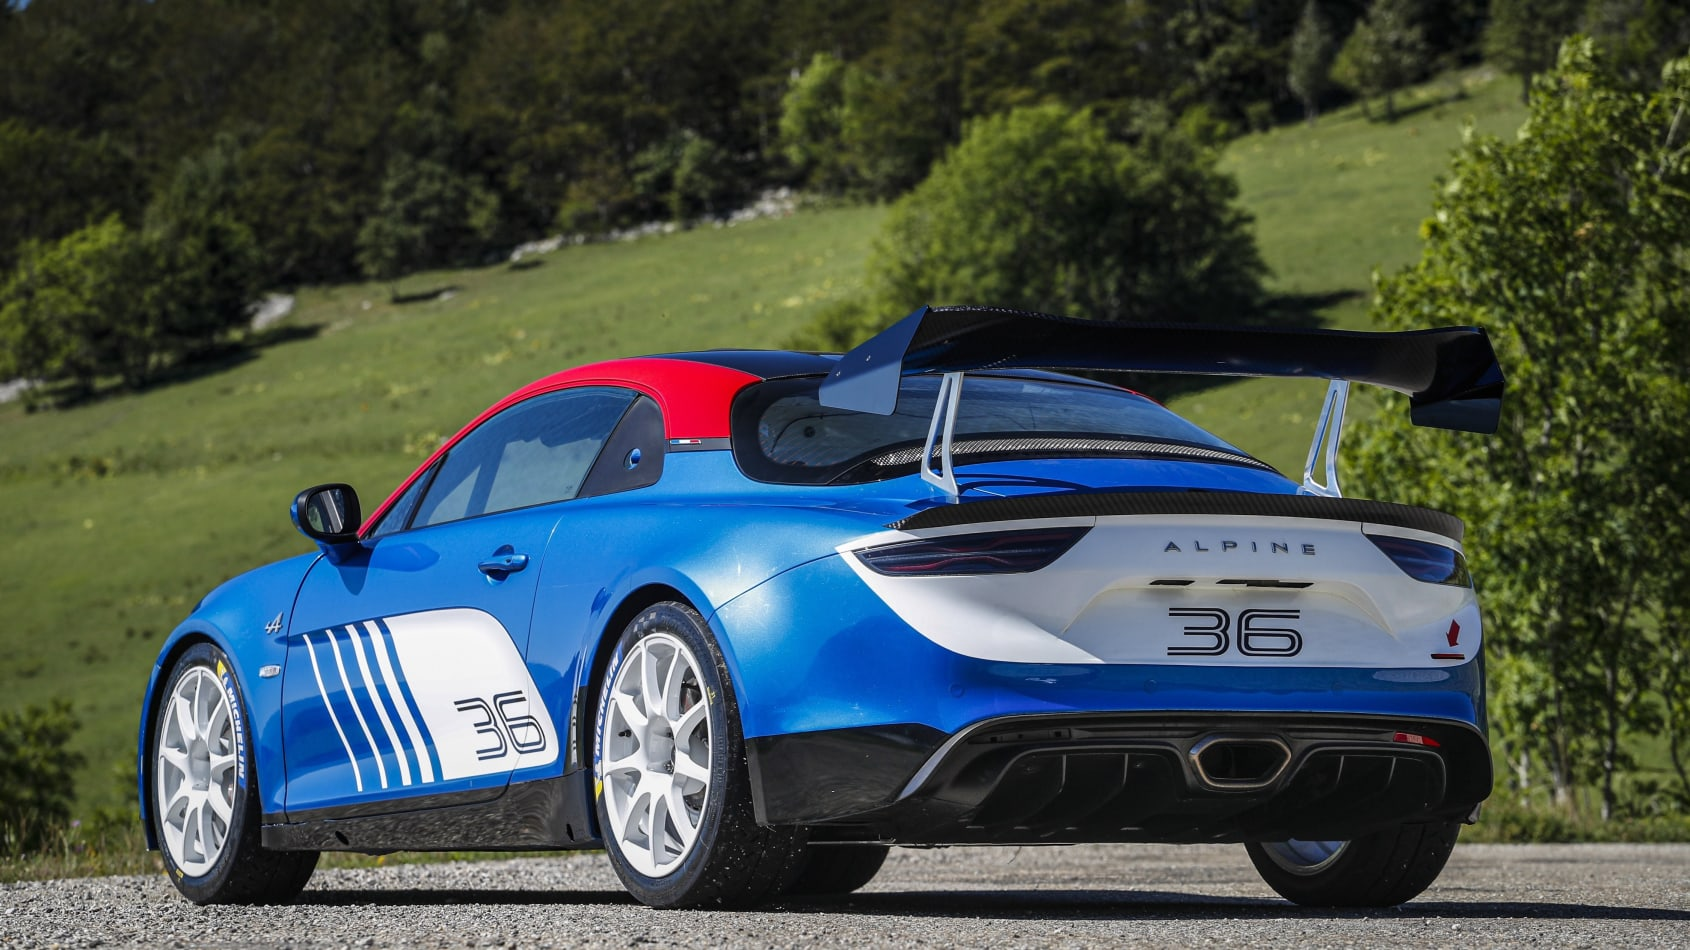 21231349_2019_-_ALPINE_A110_RALLY.jpg